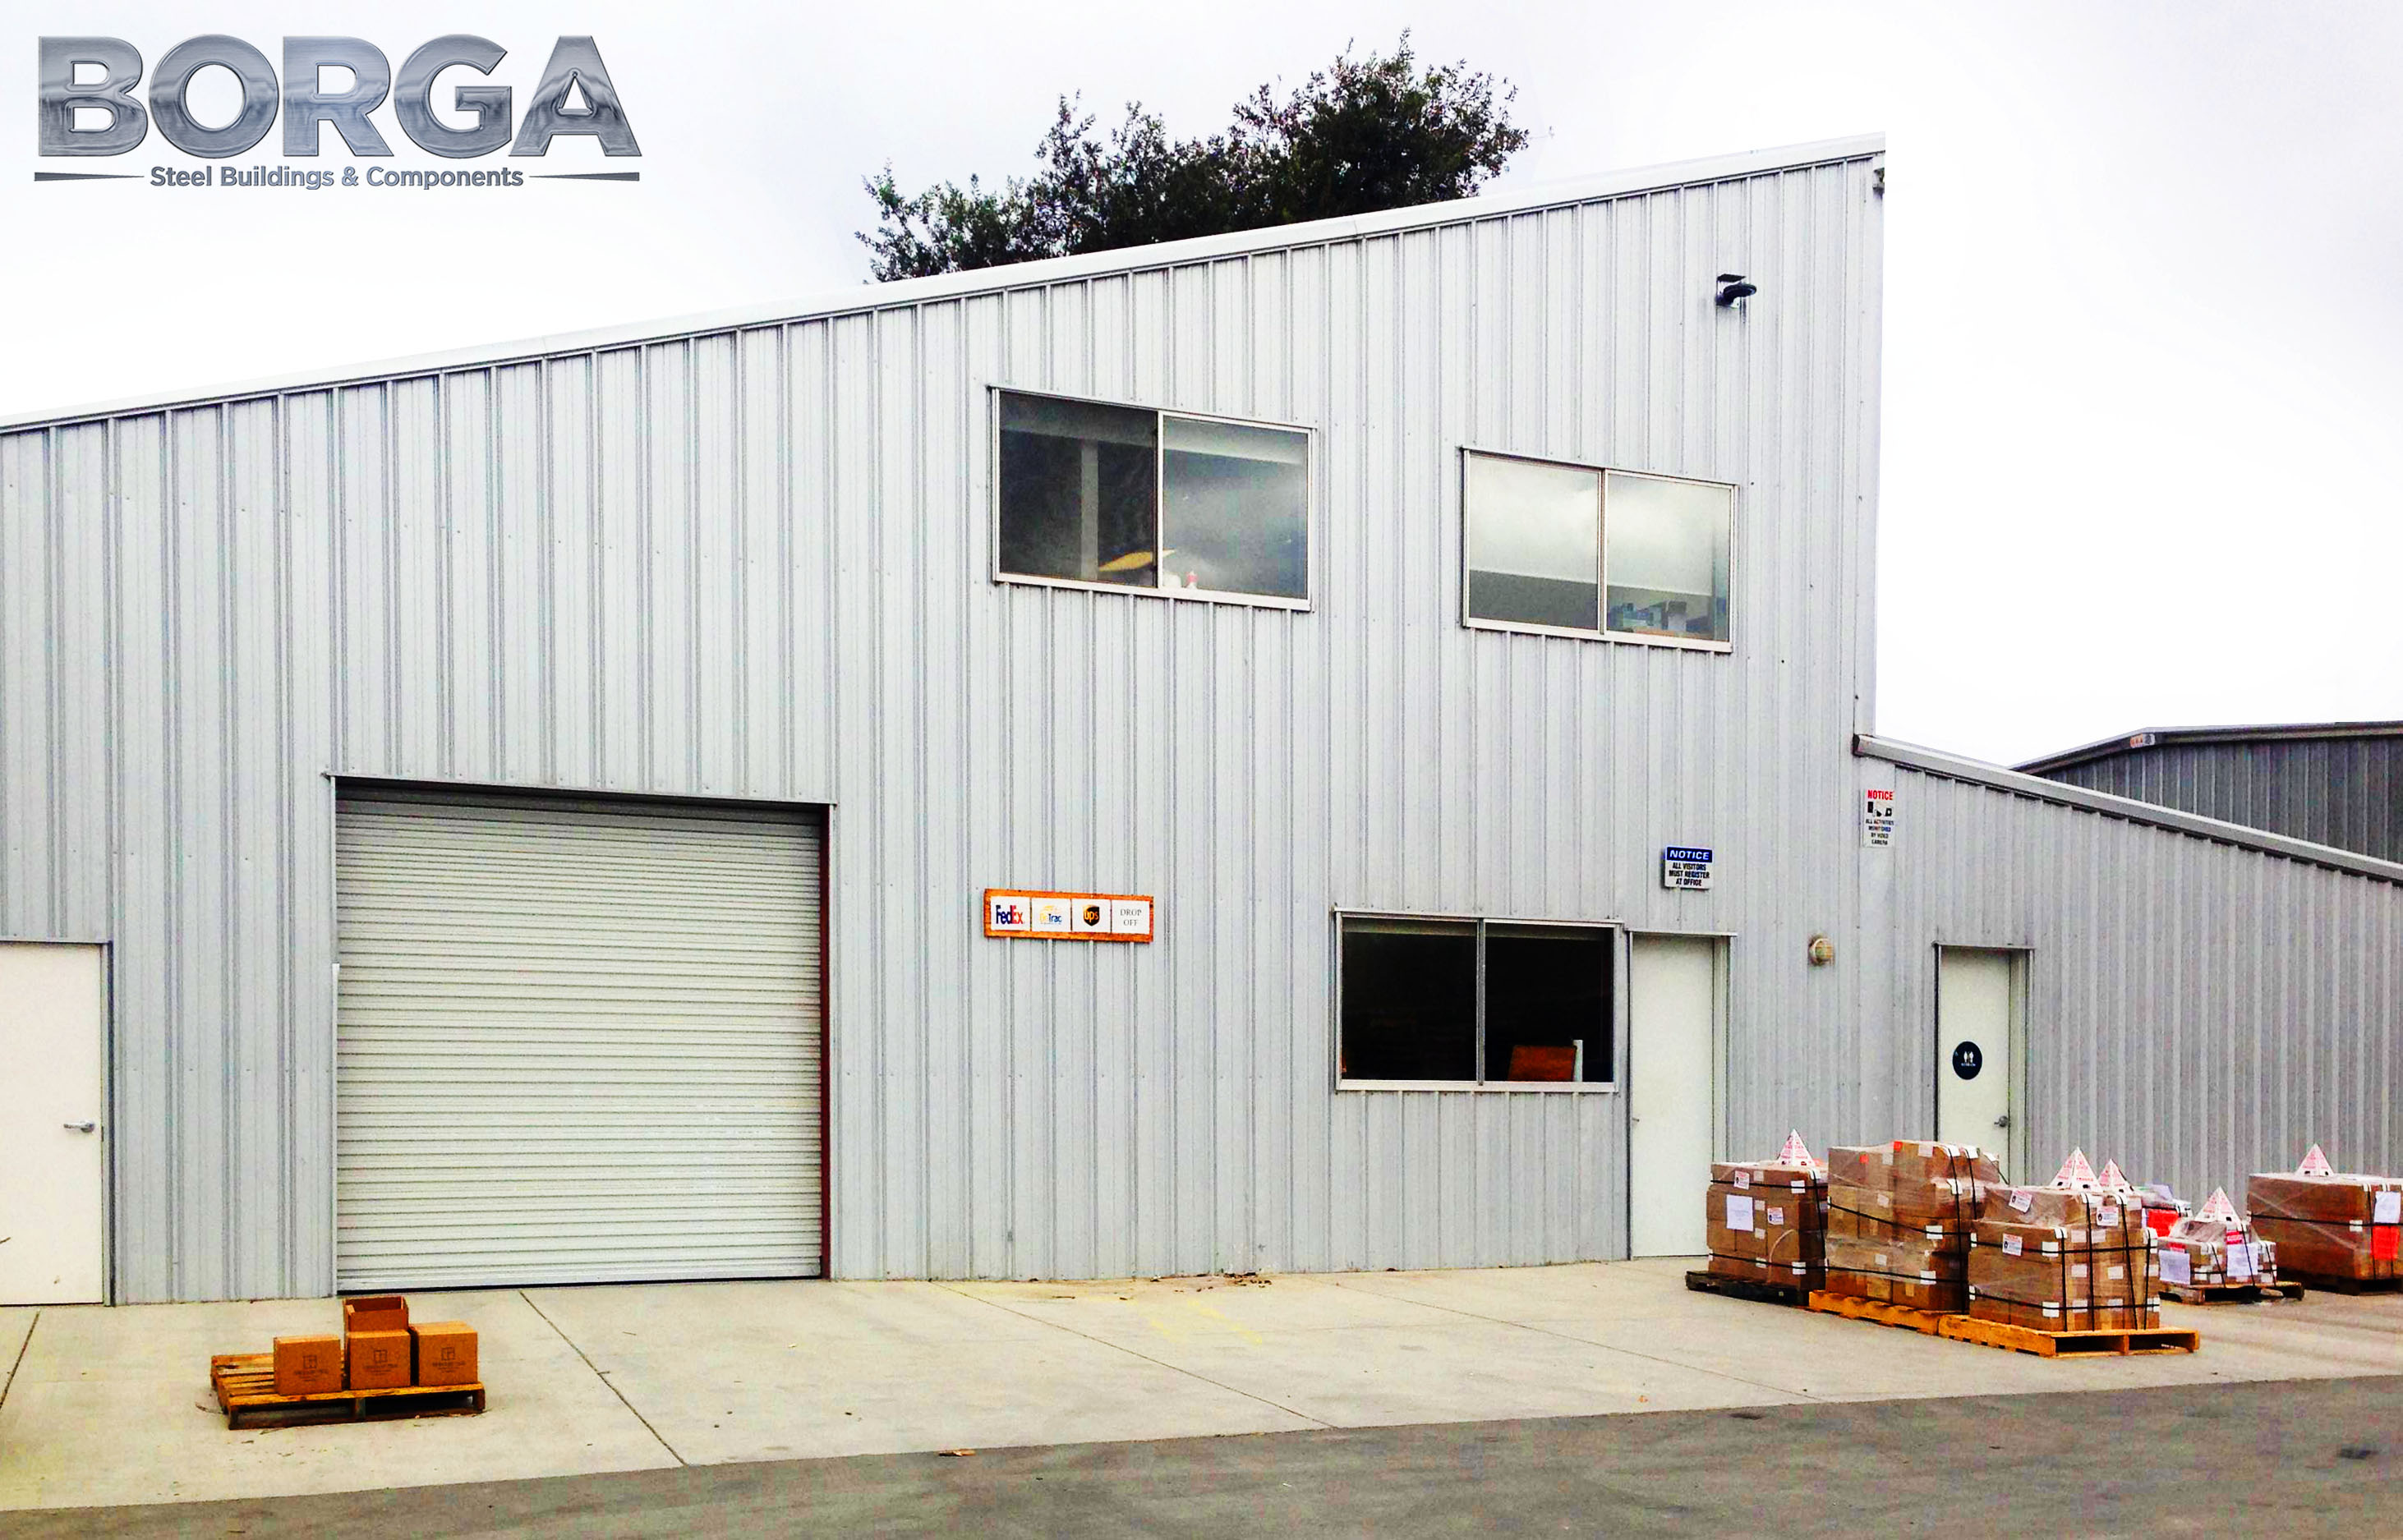 borga steel buildings and components fresno ca sheeting metal fireclay tile aromas ca 2